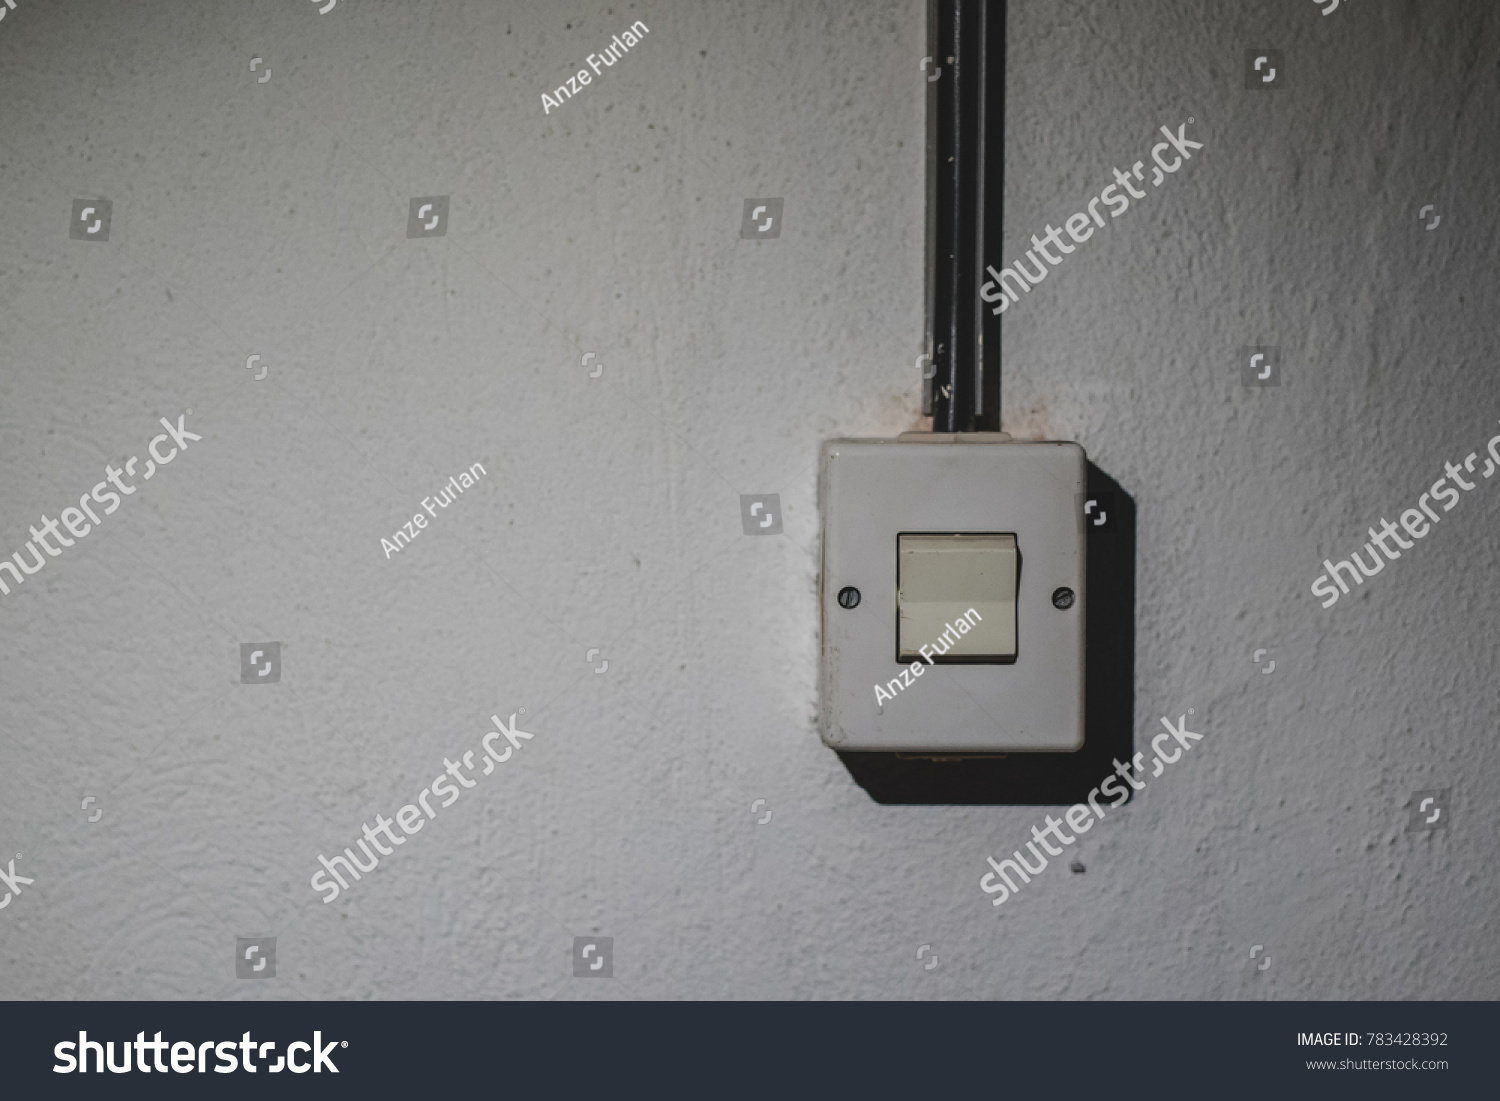 One Old Light Switch Mounted On Stock Photo Edit Now 783428392 Wiring A Plug Socket From The Stained Wall An Electrical Wire Is Seen Going